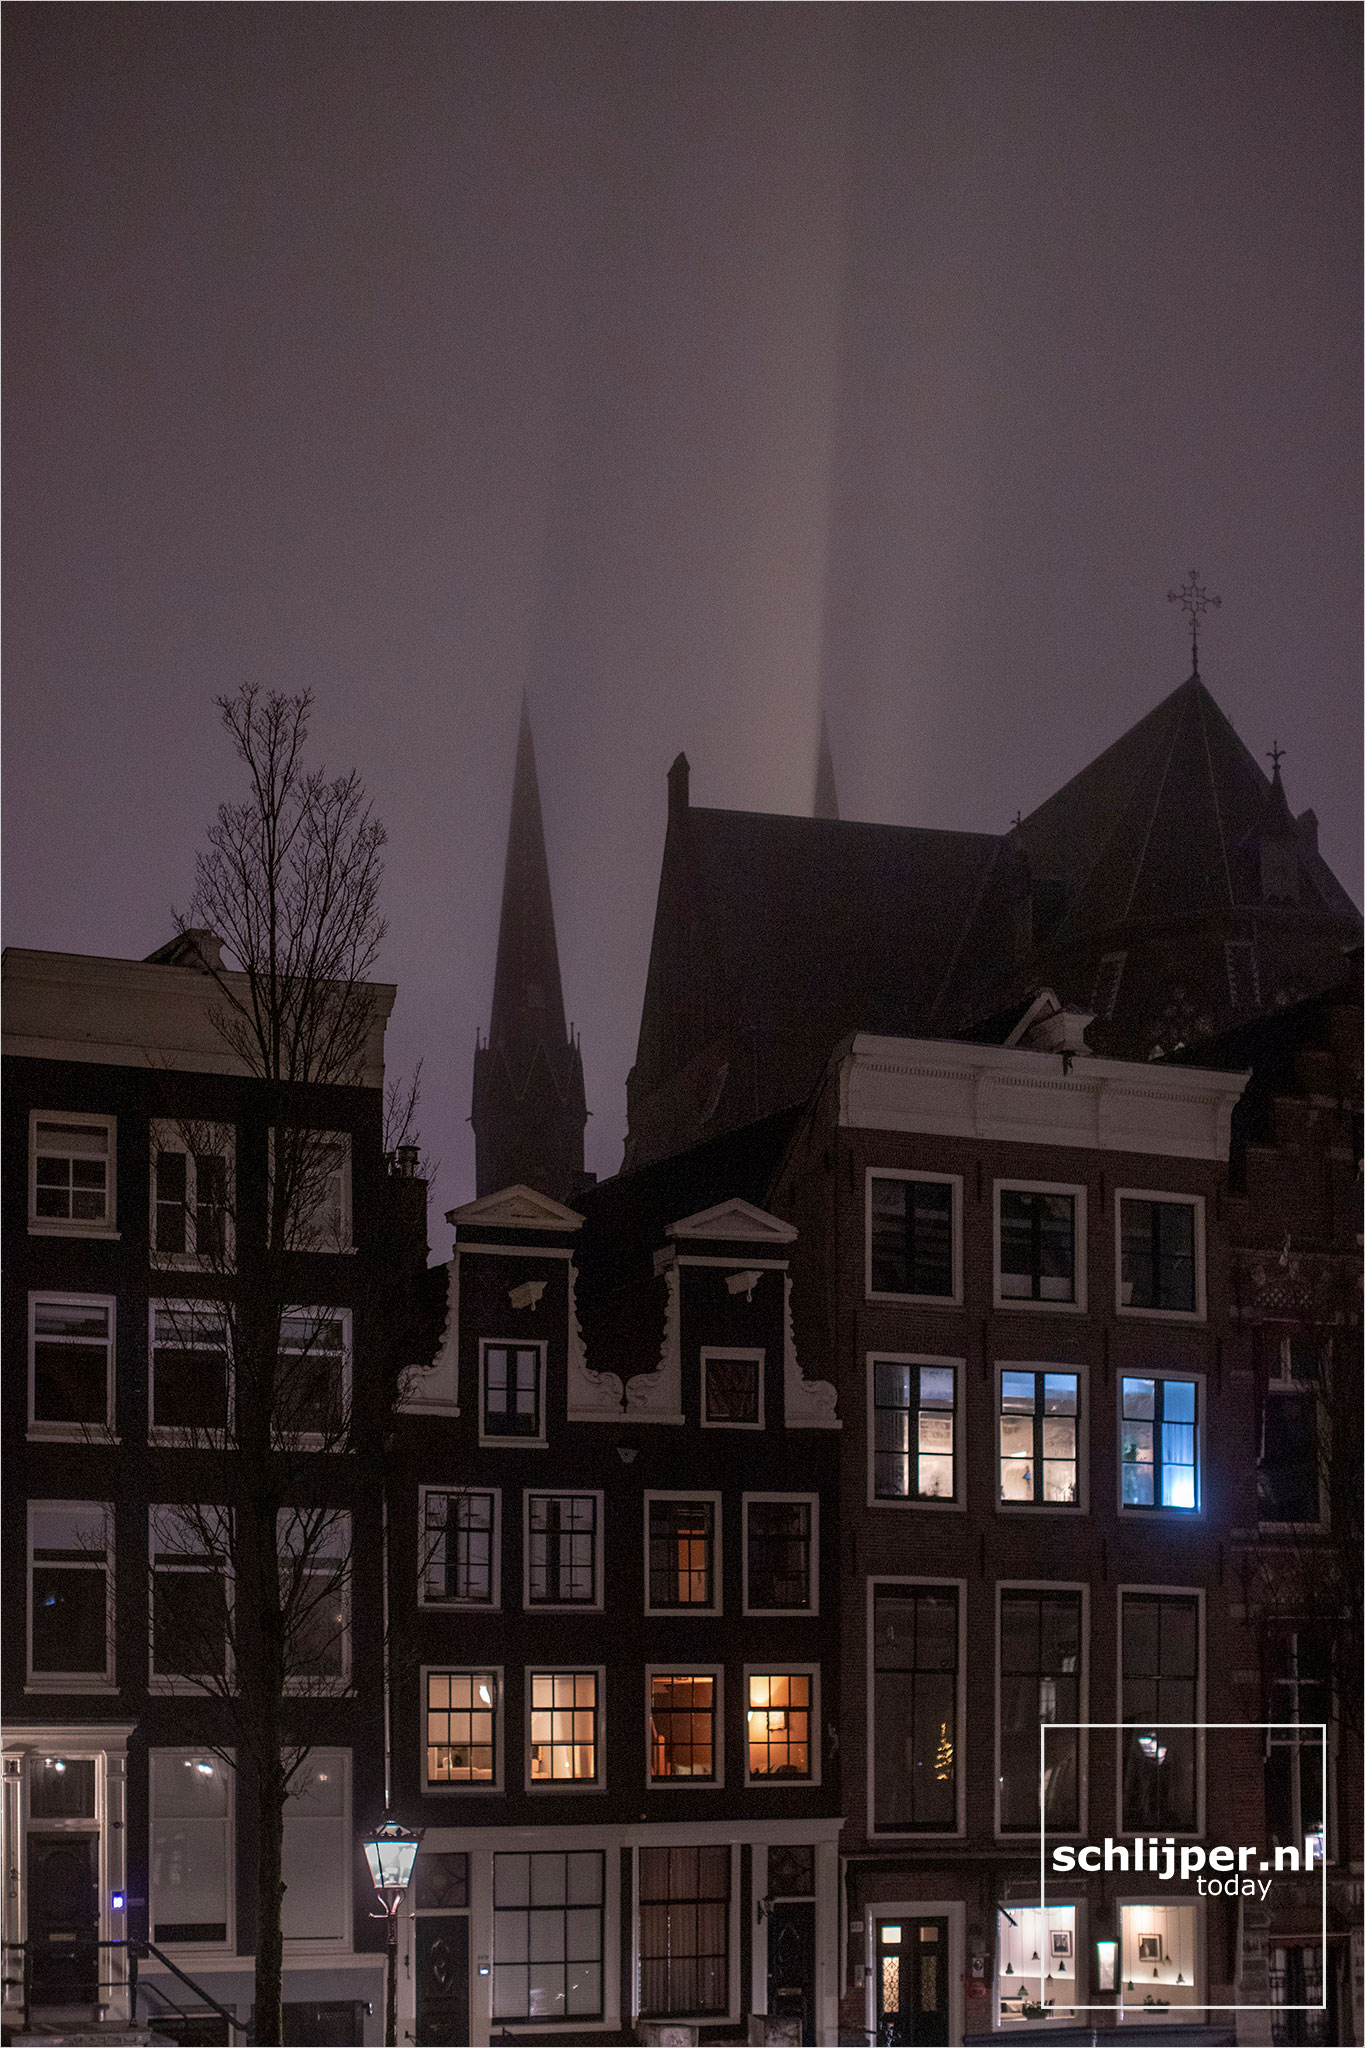 The Netherlands, Amsterdam, 2 januari 2021